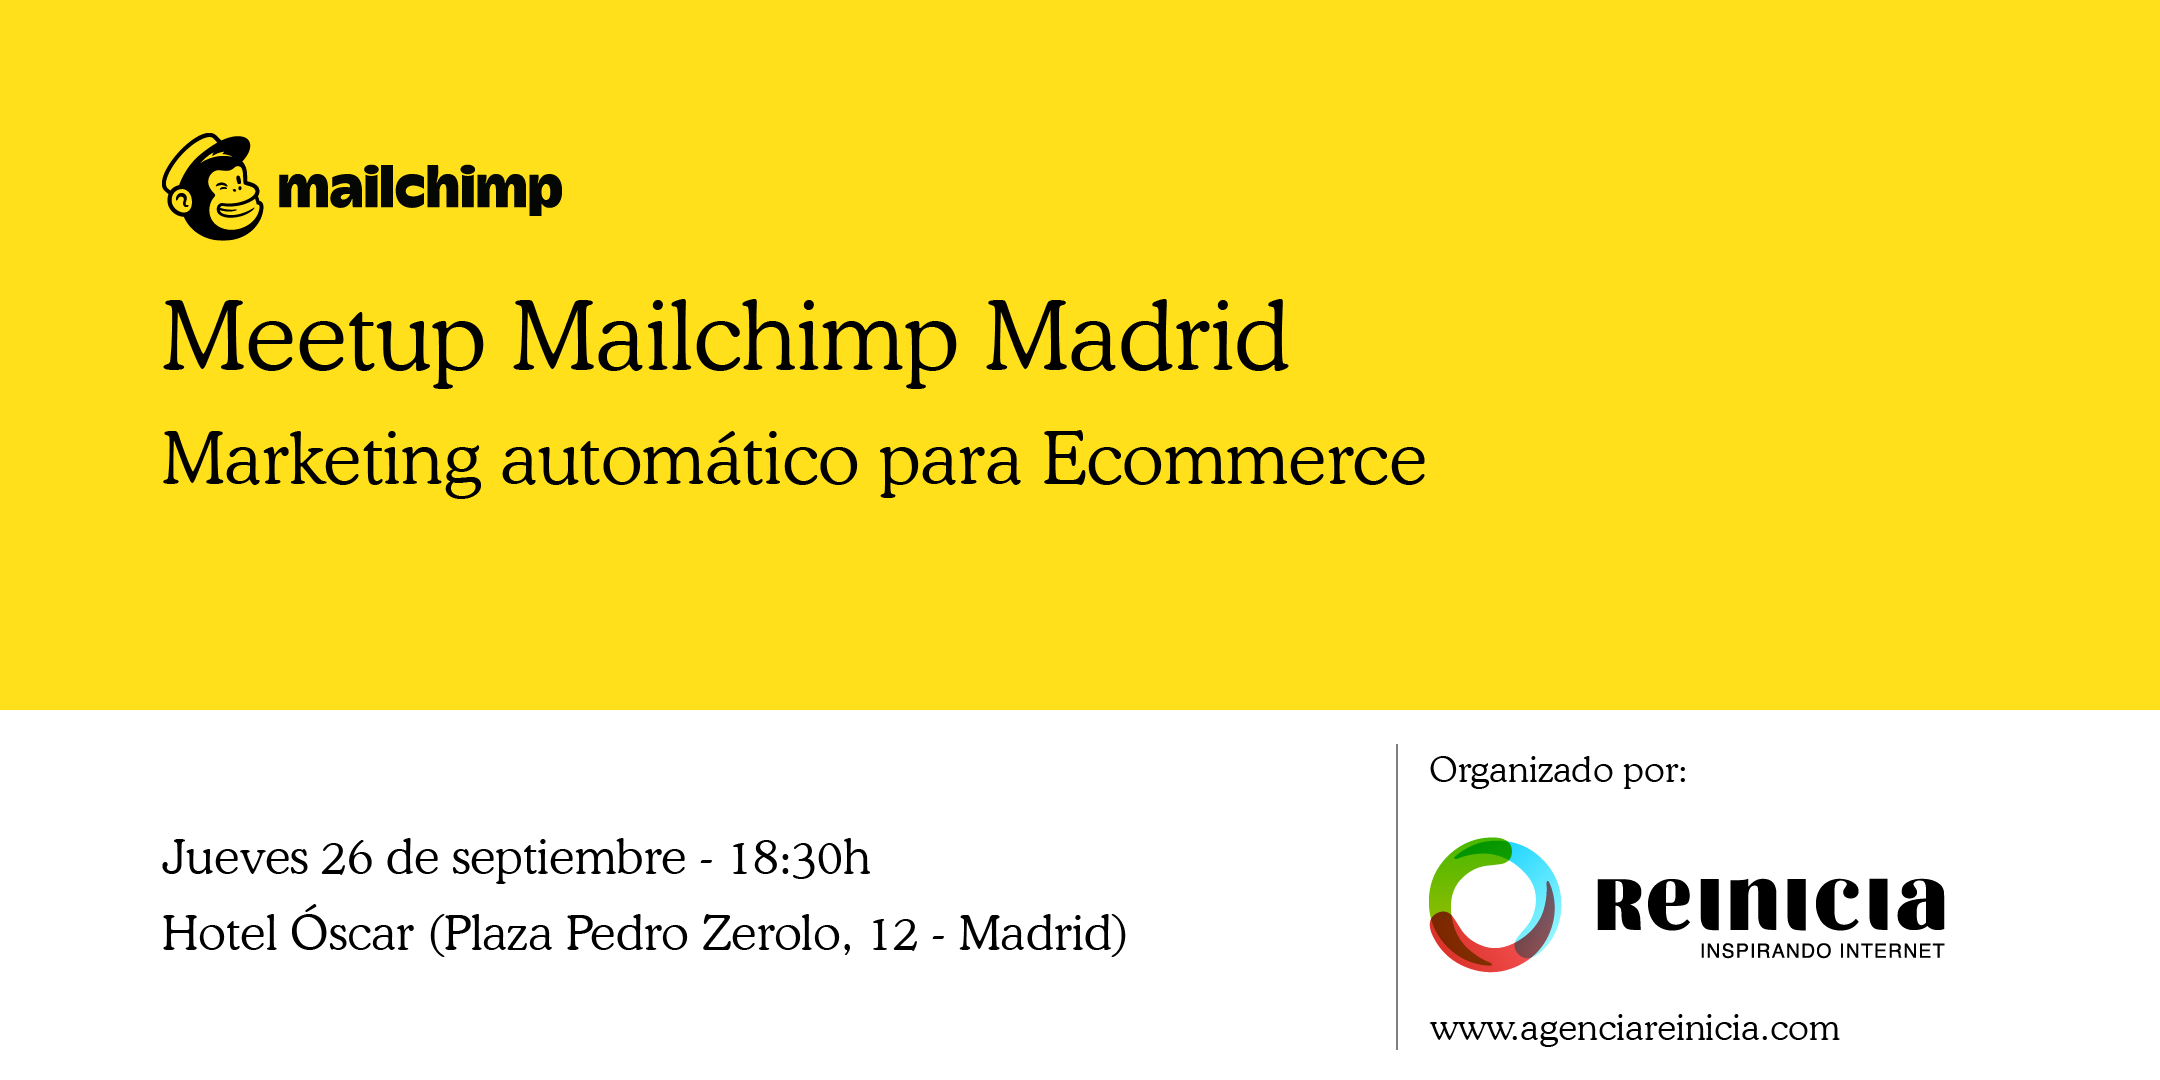 creatividad-meetup-mailchimp-marketing-automatico-ecoomerce-web